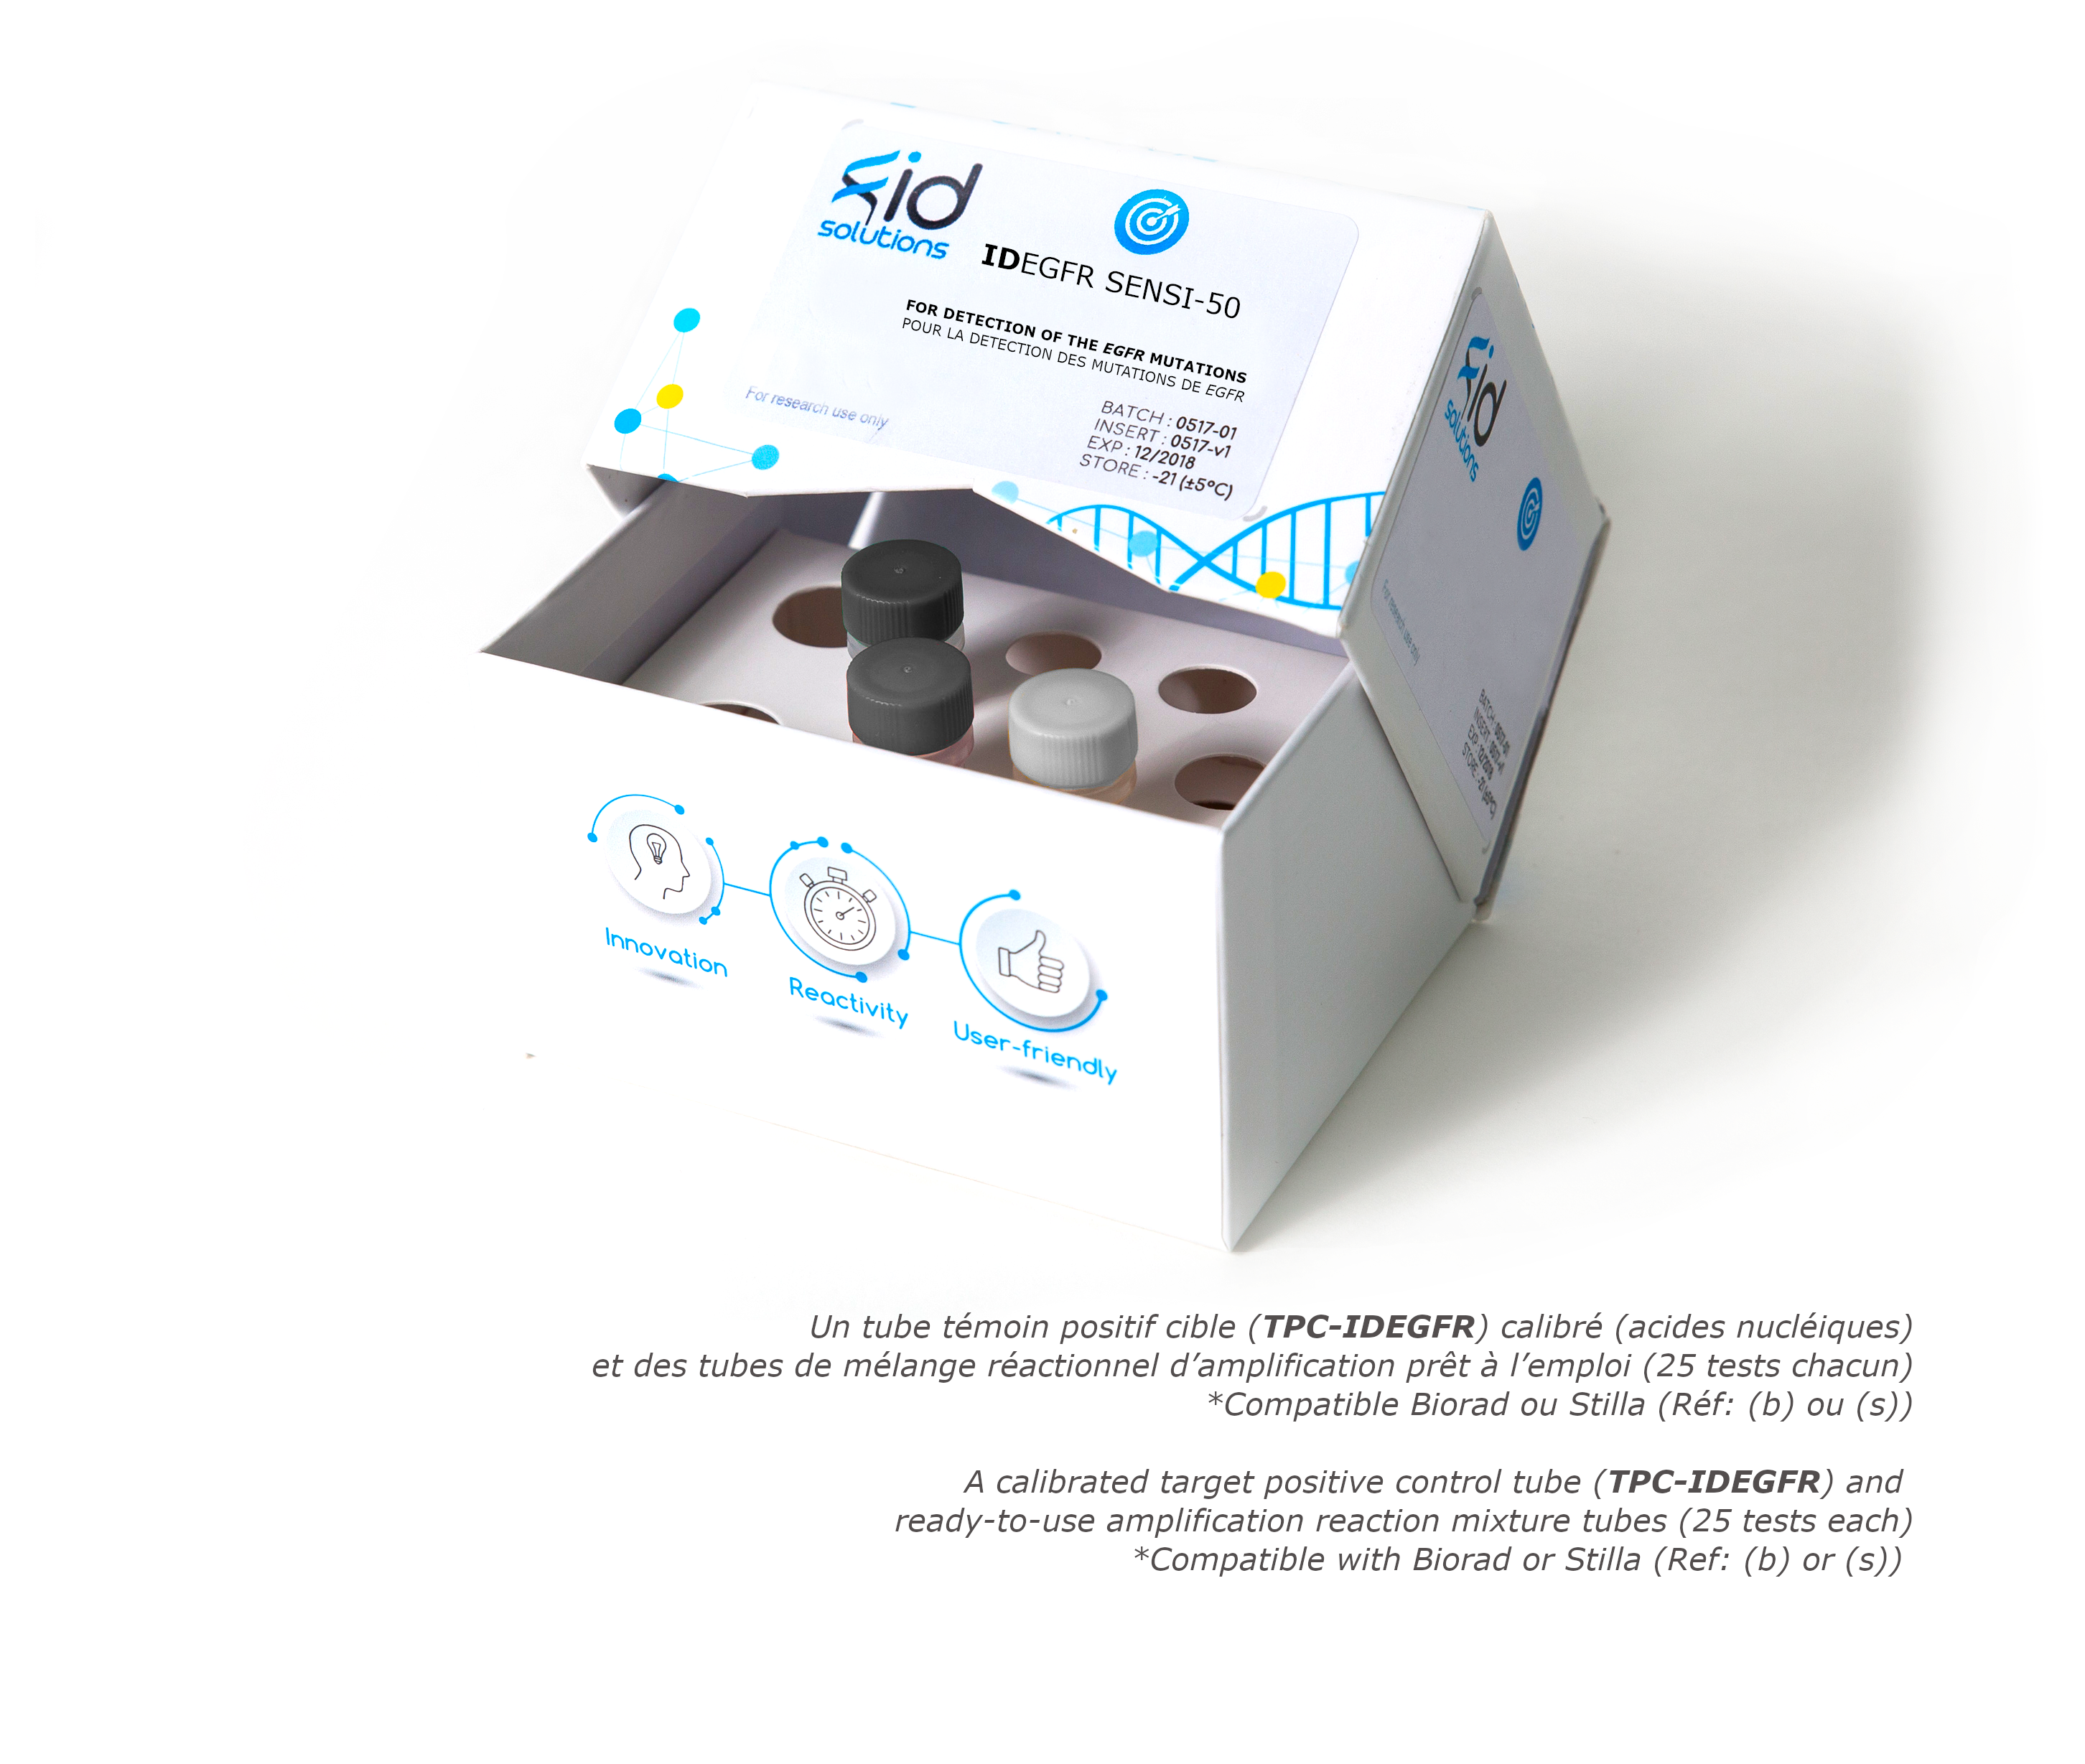 IDEGFR SENSI - Circulating tumor DNA EGFR Mutation Detection Kit based on digital PCR